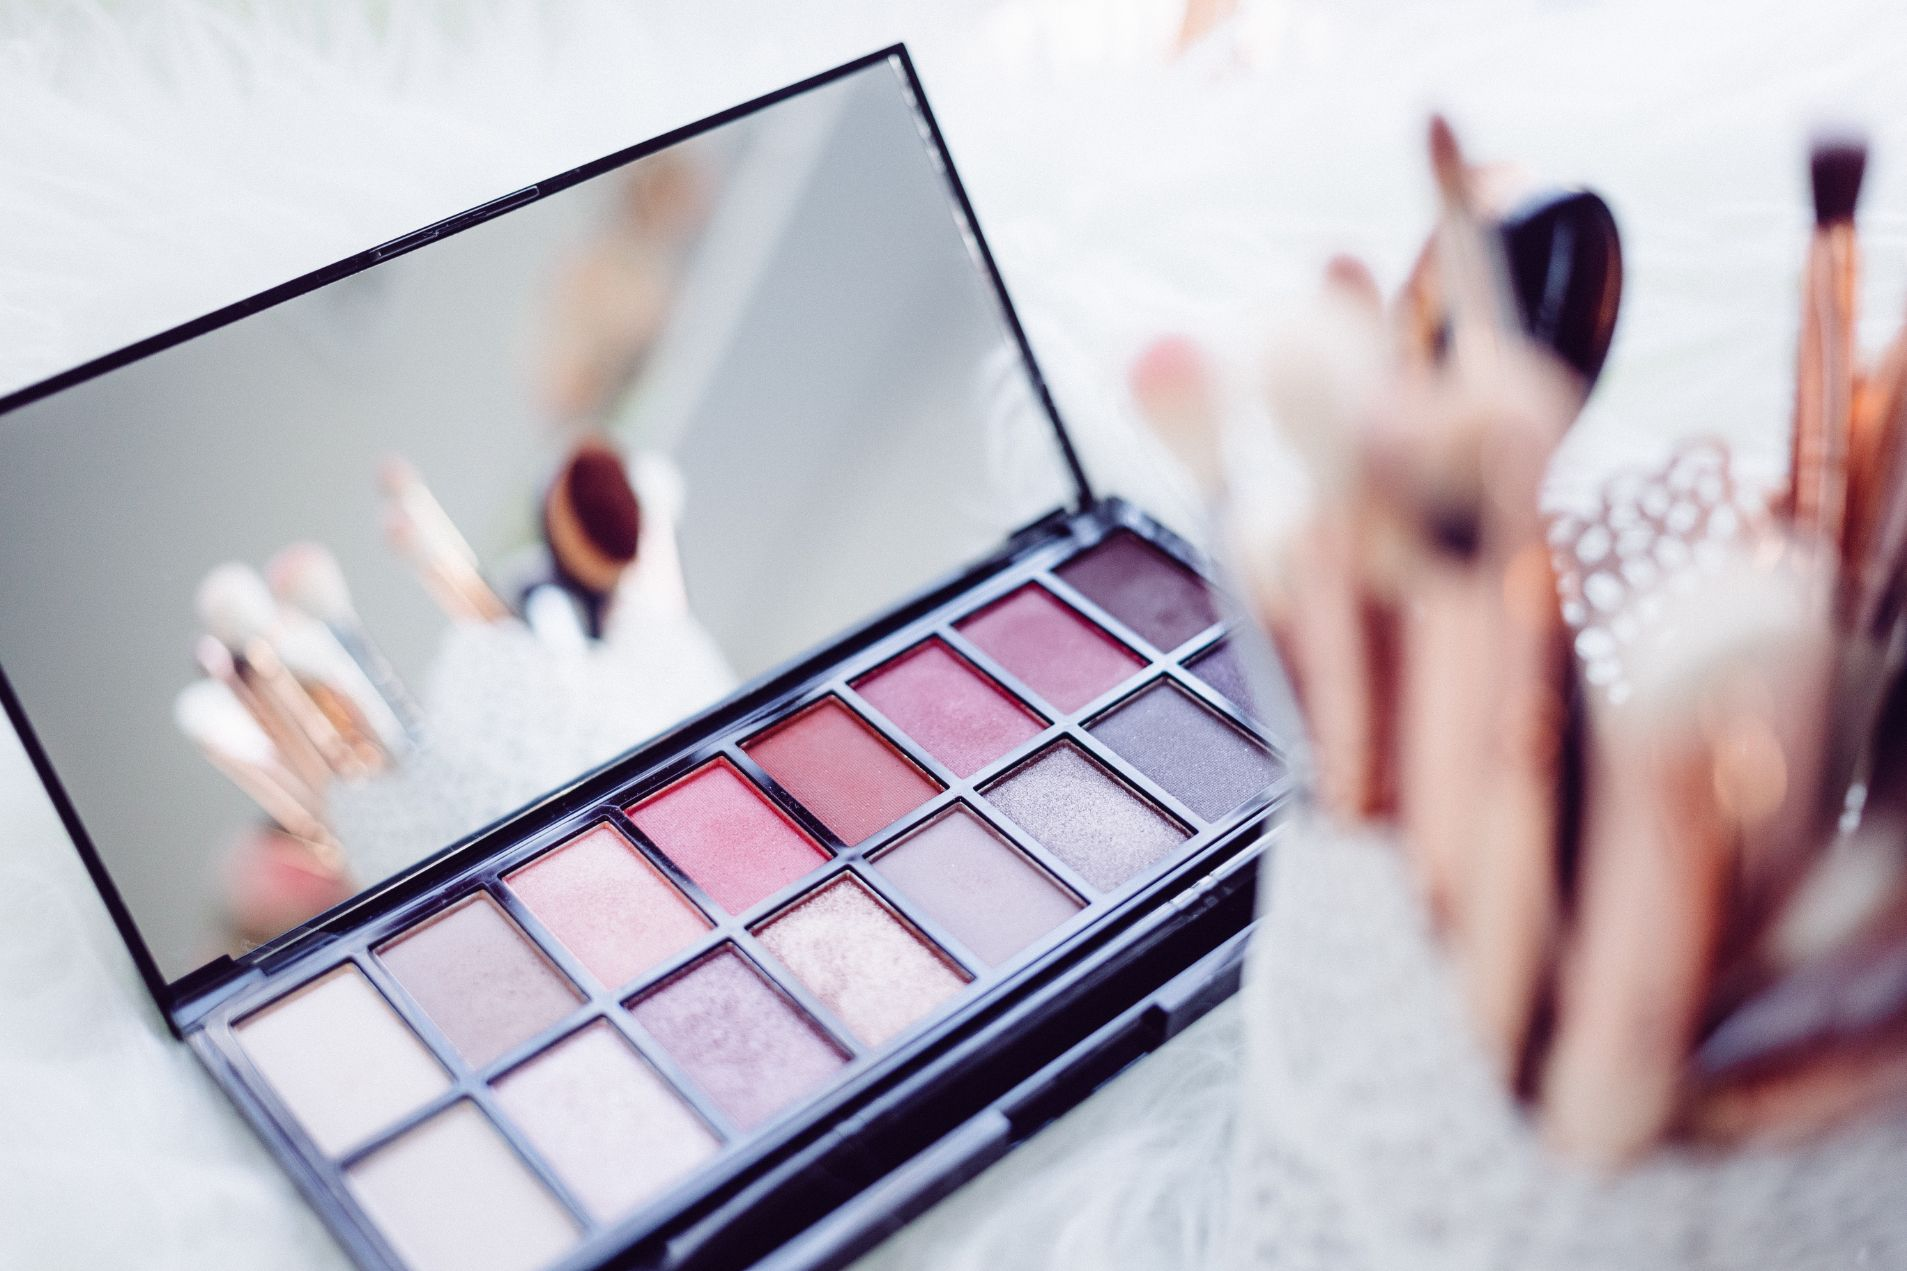 5 Affordable Designer Makeup Brands to Spruce Up Your Collection